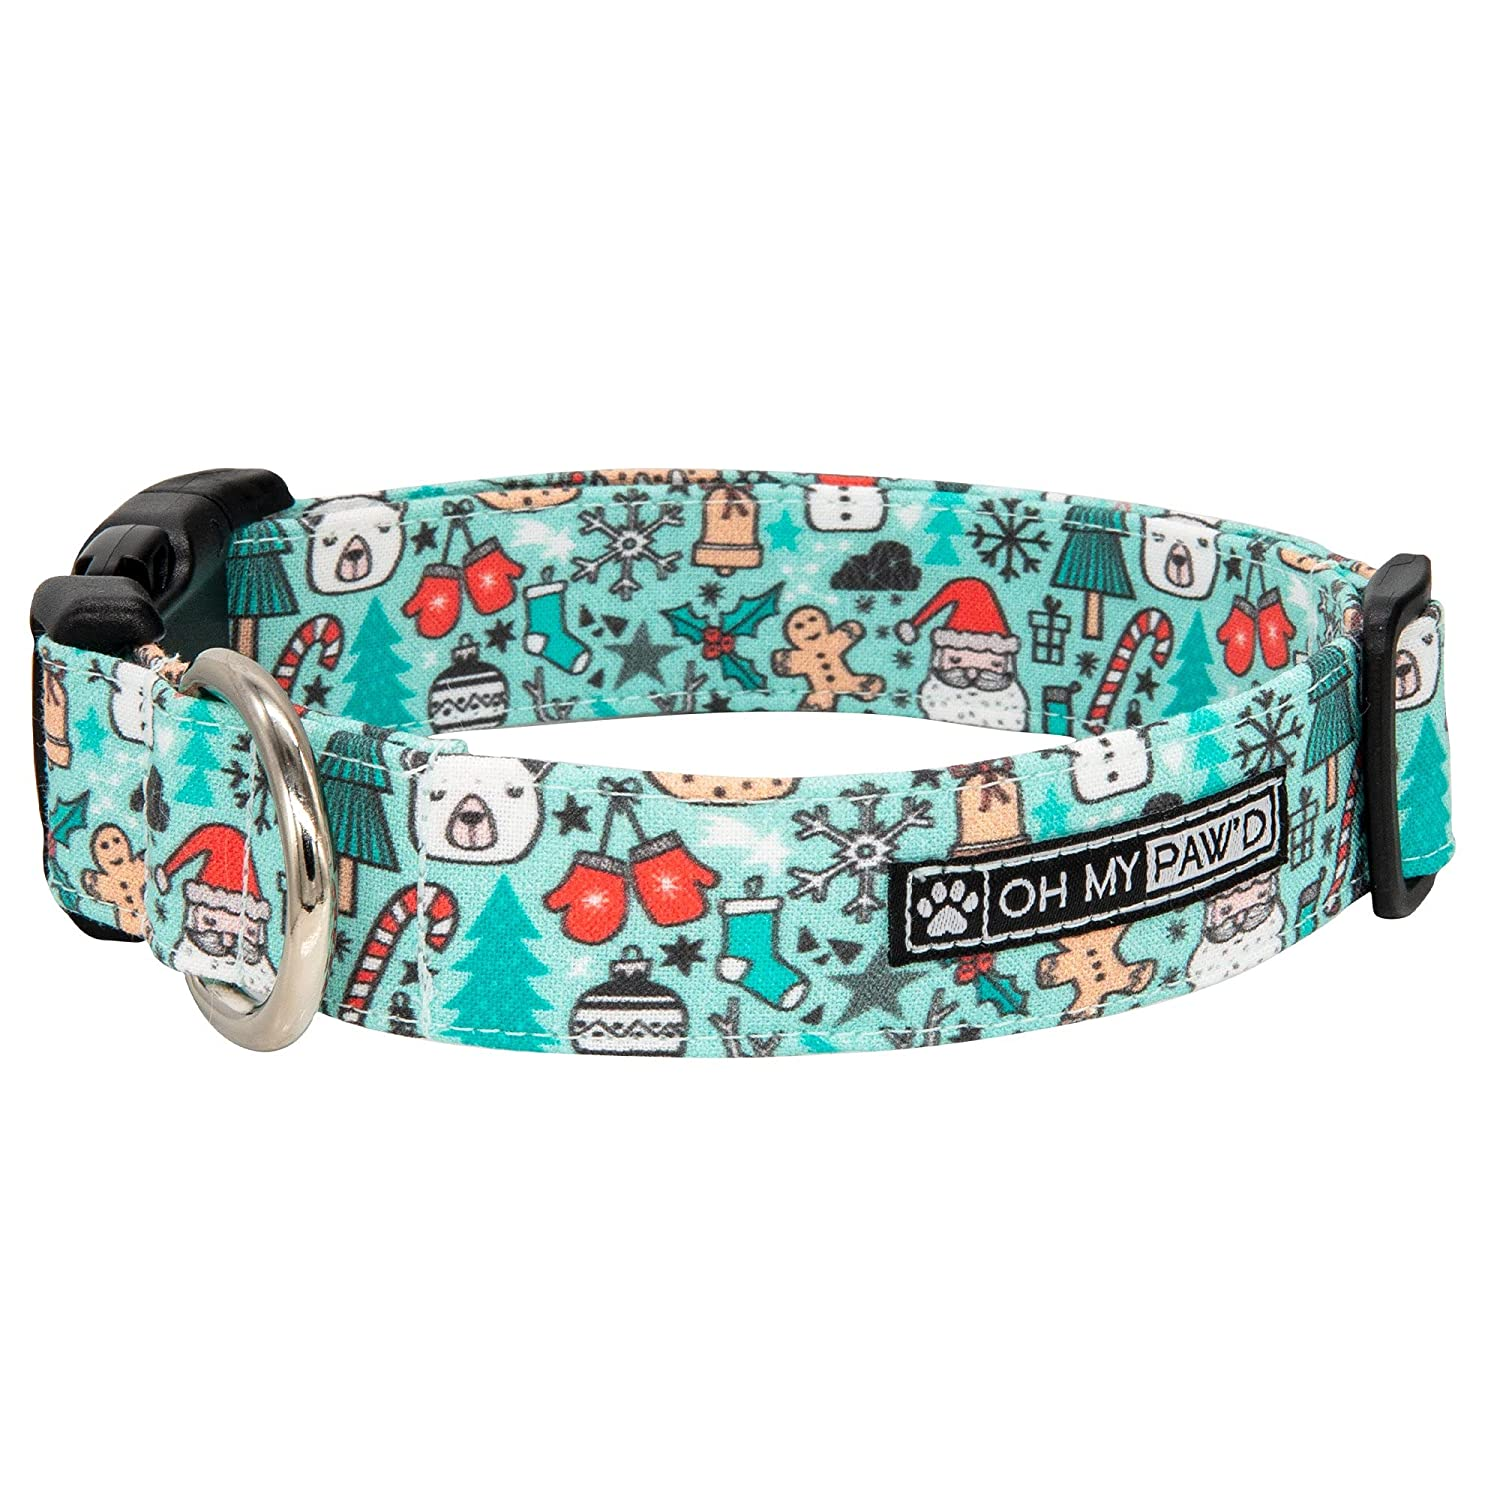 Winter Holiday Collar for Dogs or Cats Inch Overseas parallel import regular Special price for a limited time item 5 8 Small Size Extra